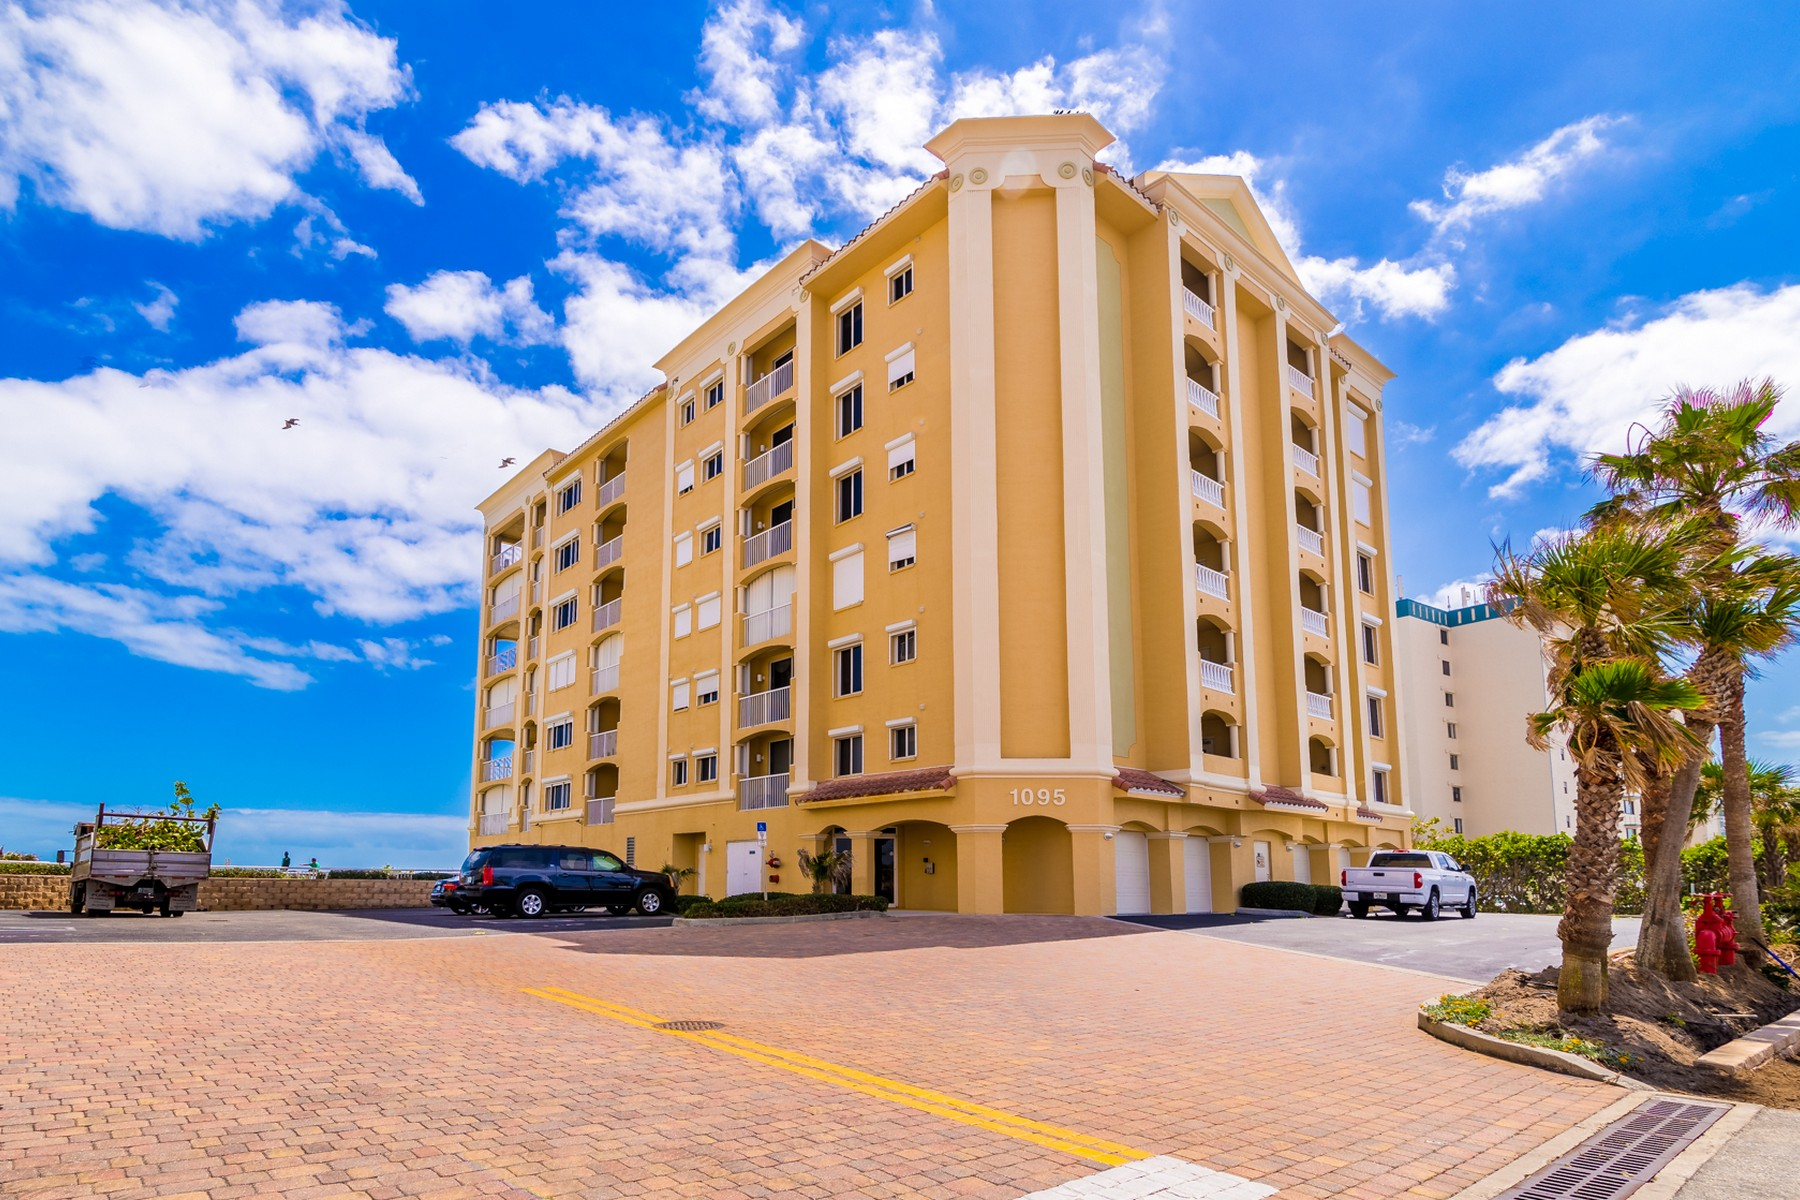 Condominium for Sale at The Oceans Condominium 1095 Highway A1A #2401 Satellite Beach, Florida 32937 United States